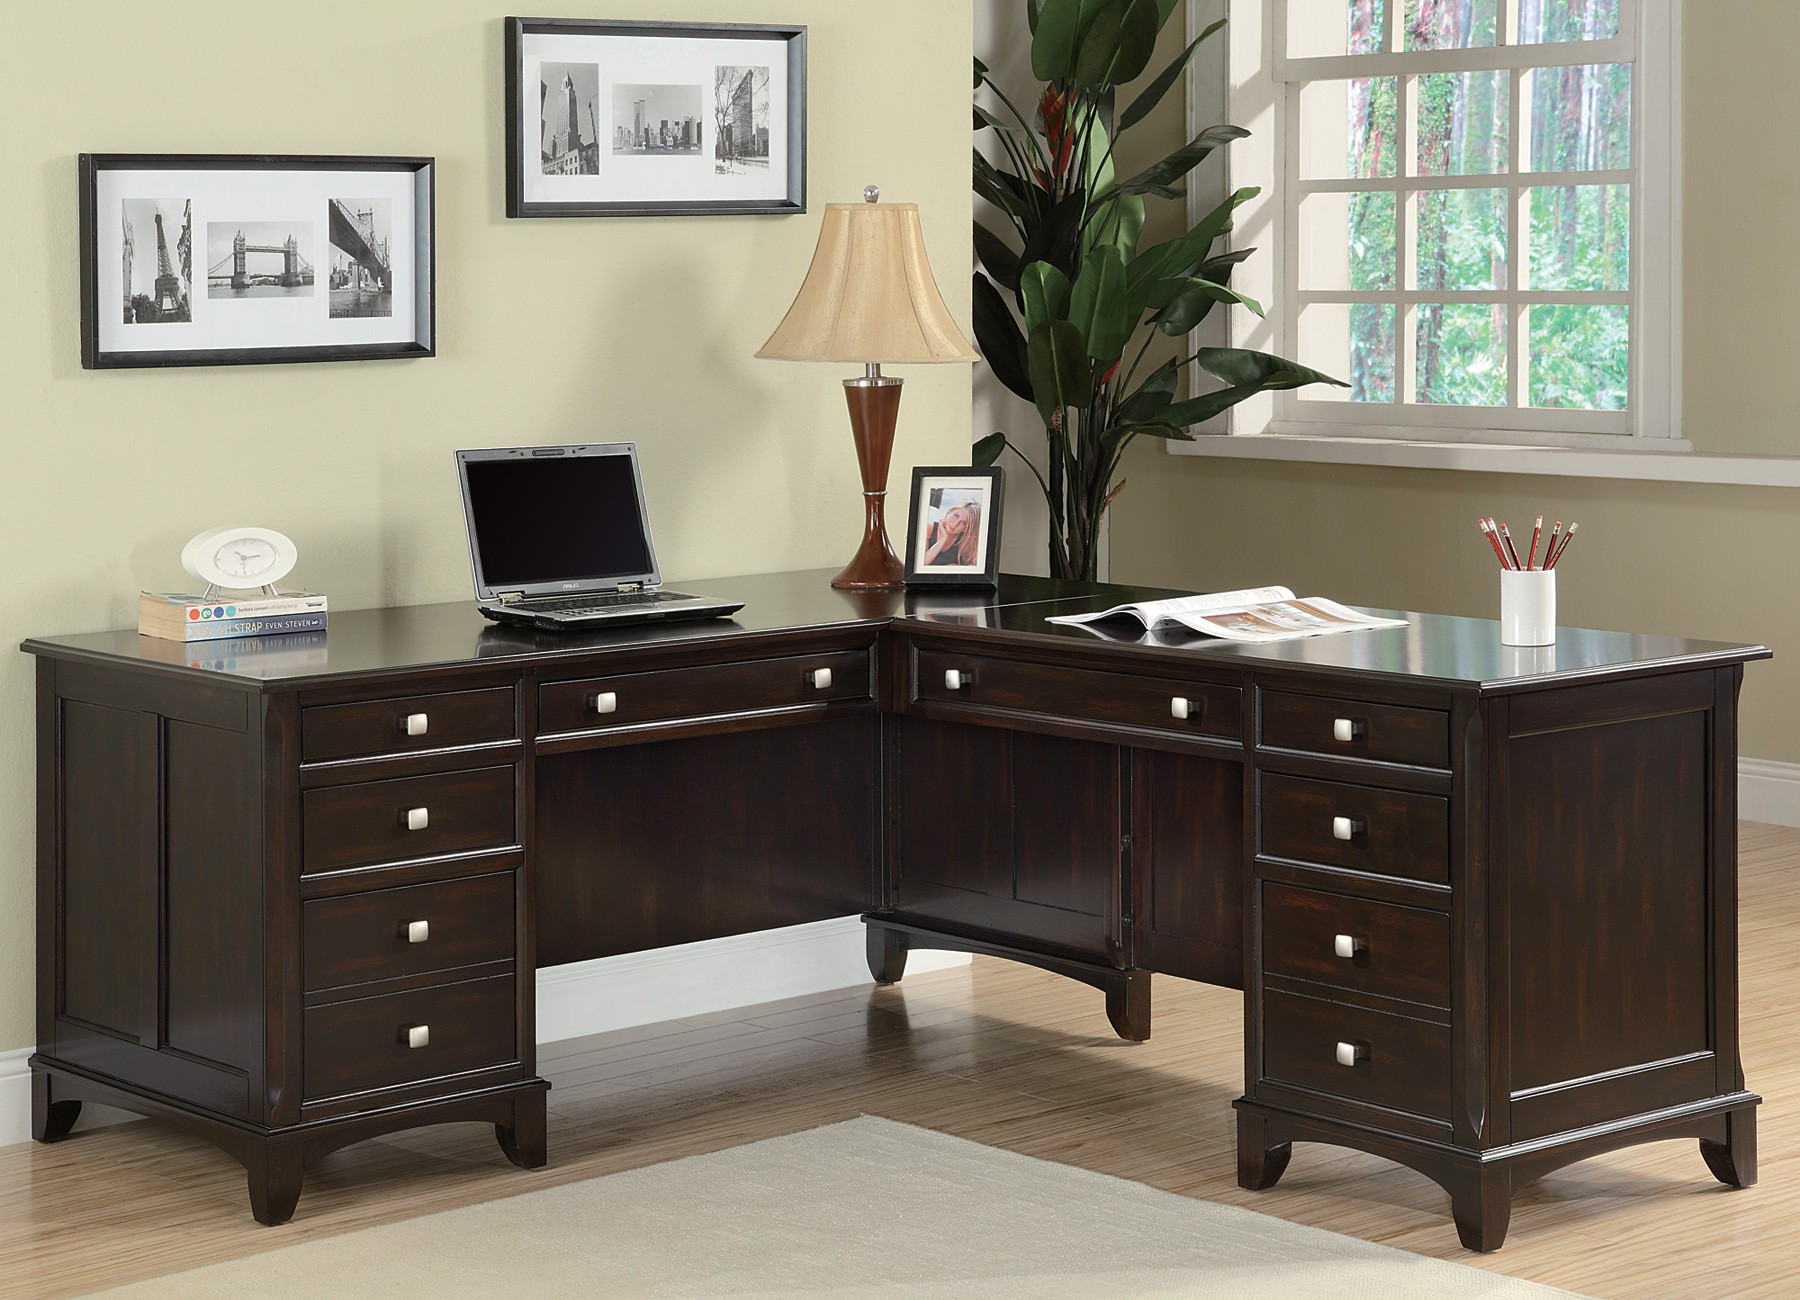 L Shaped Home Office To Garson Home Office Shaped Desk From Coaster 801011l801011r Coleman Furniture 801011l801011r